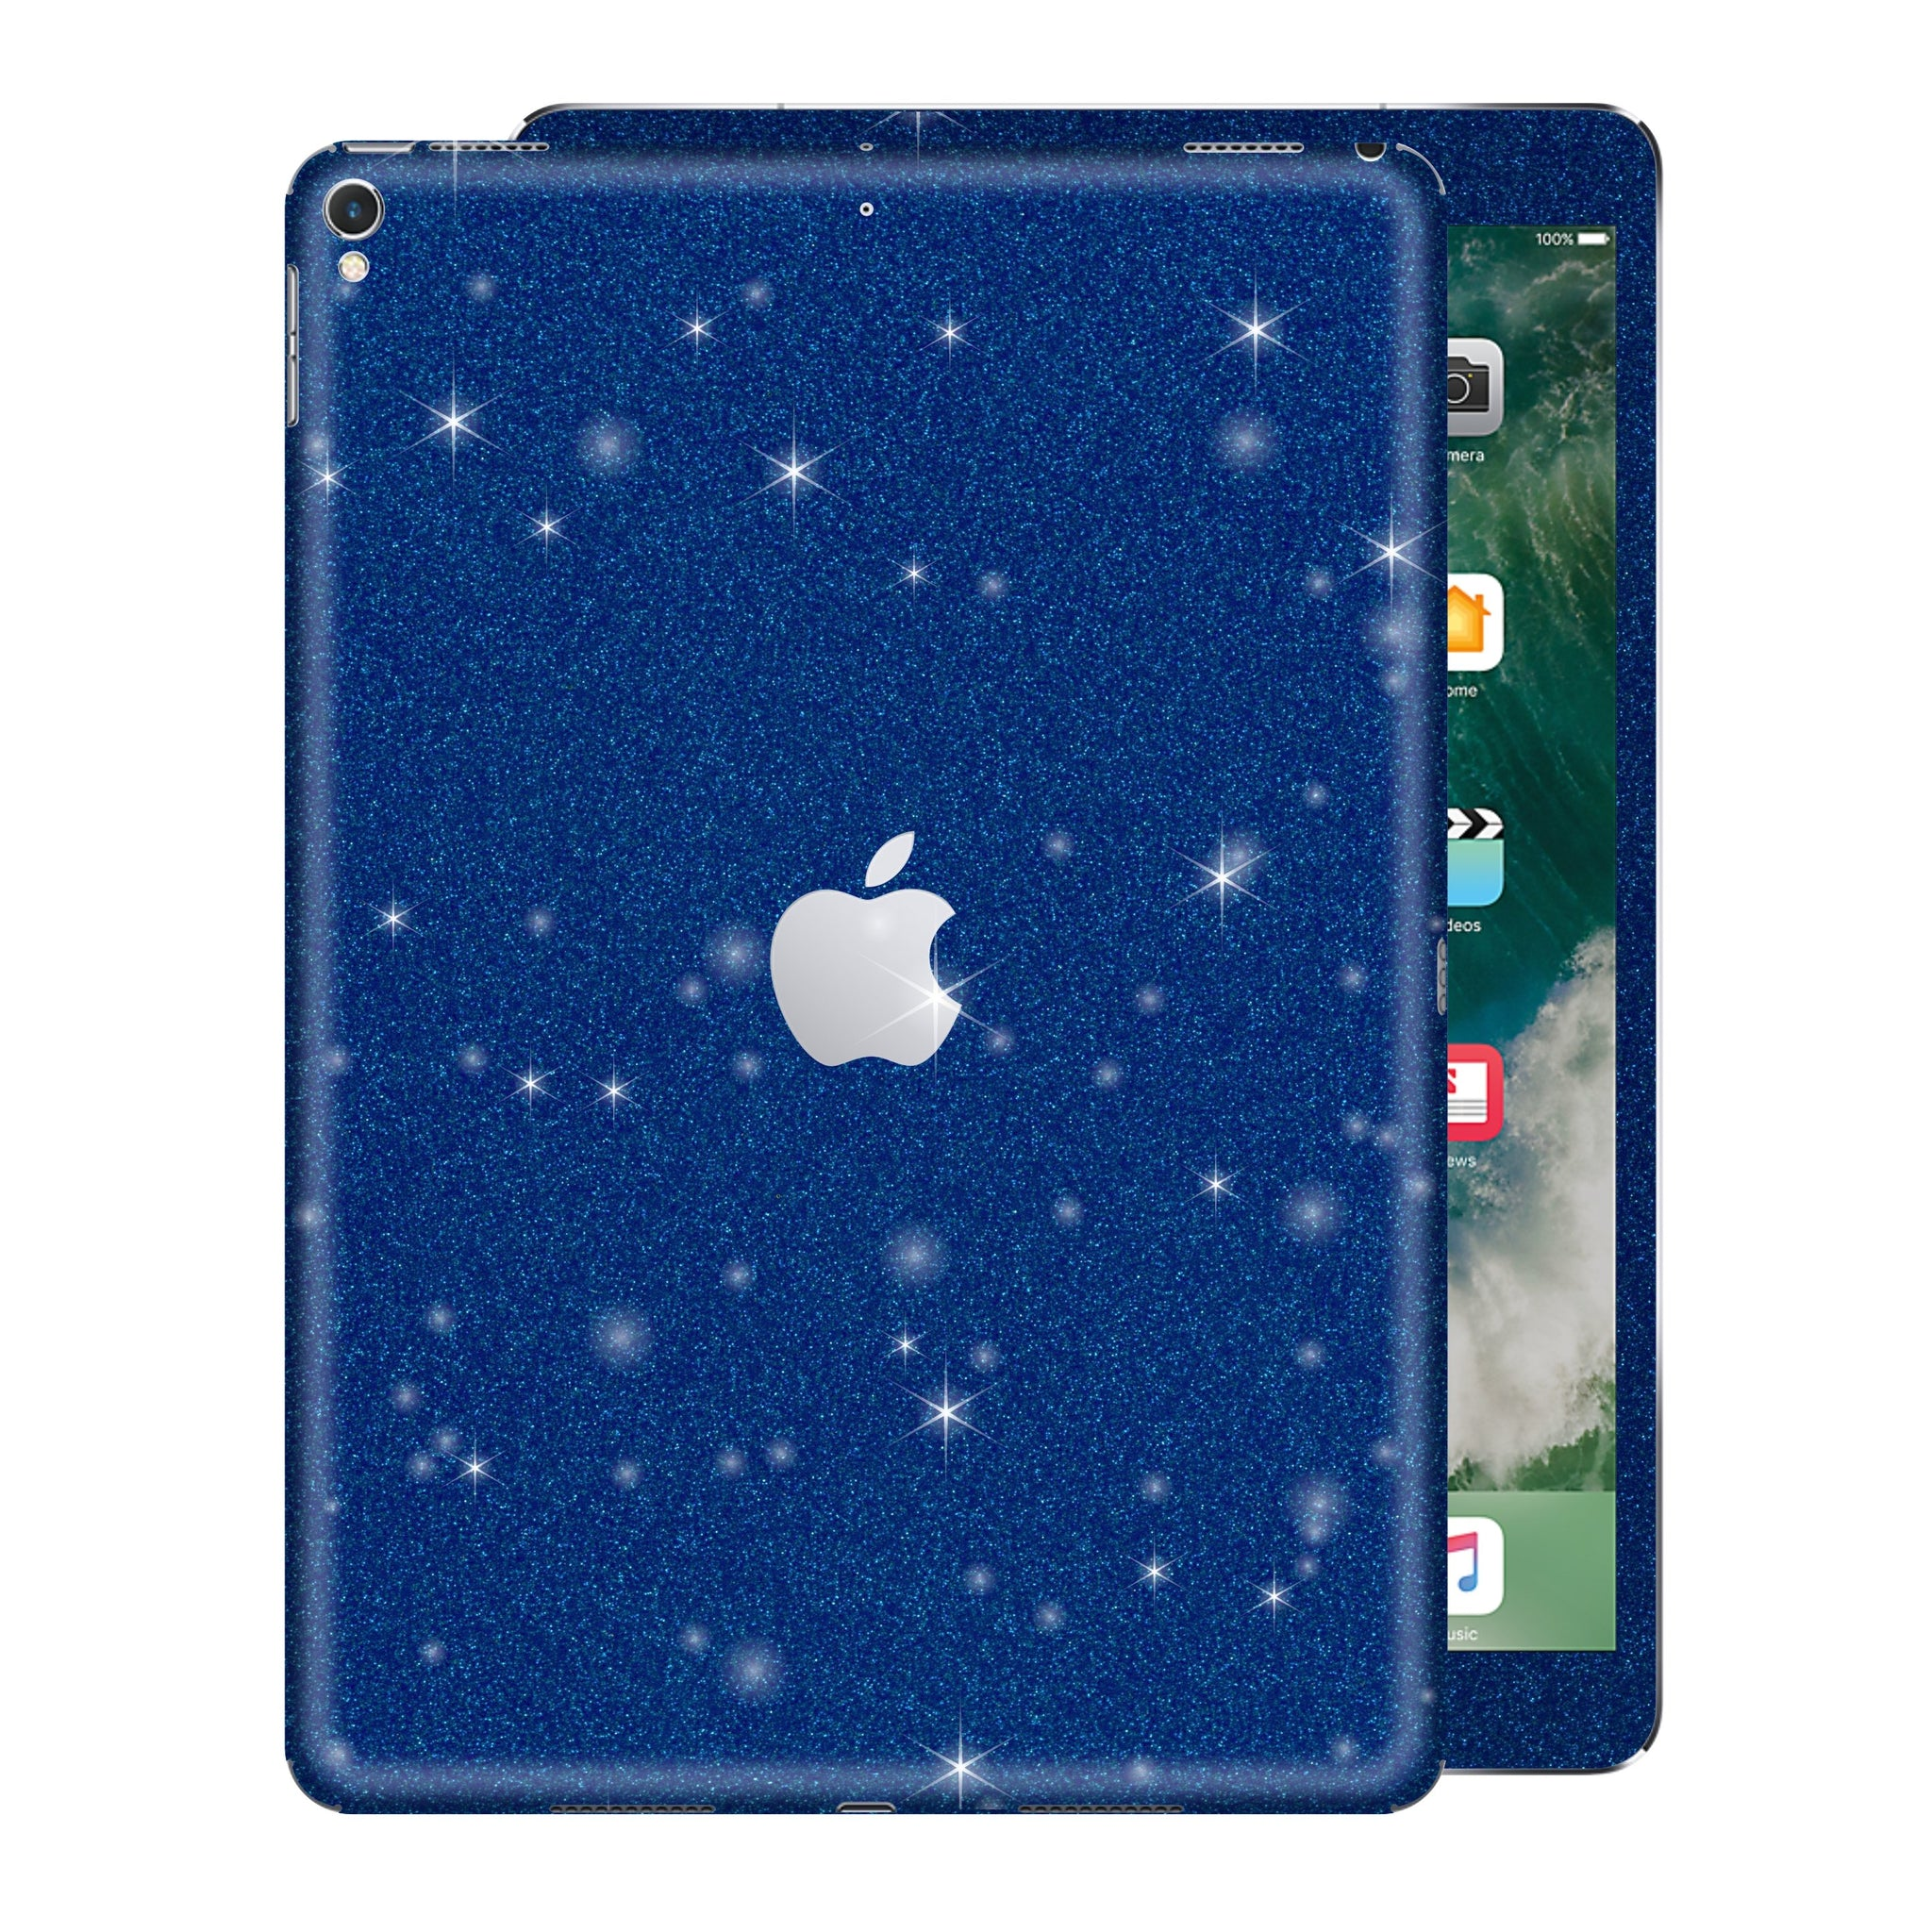 "iPad PRO 10.5"" inch 2017 Diamond BLUE Glitter Shimmering Skin Wrap Sticker Decal Cover Protector by EasySkinz"